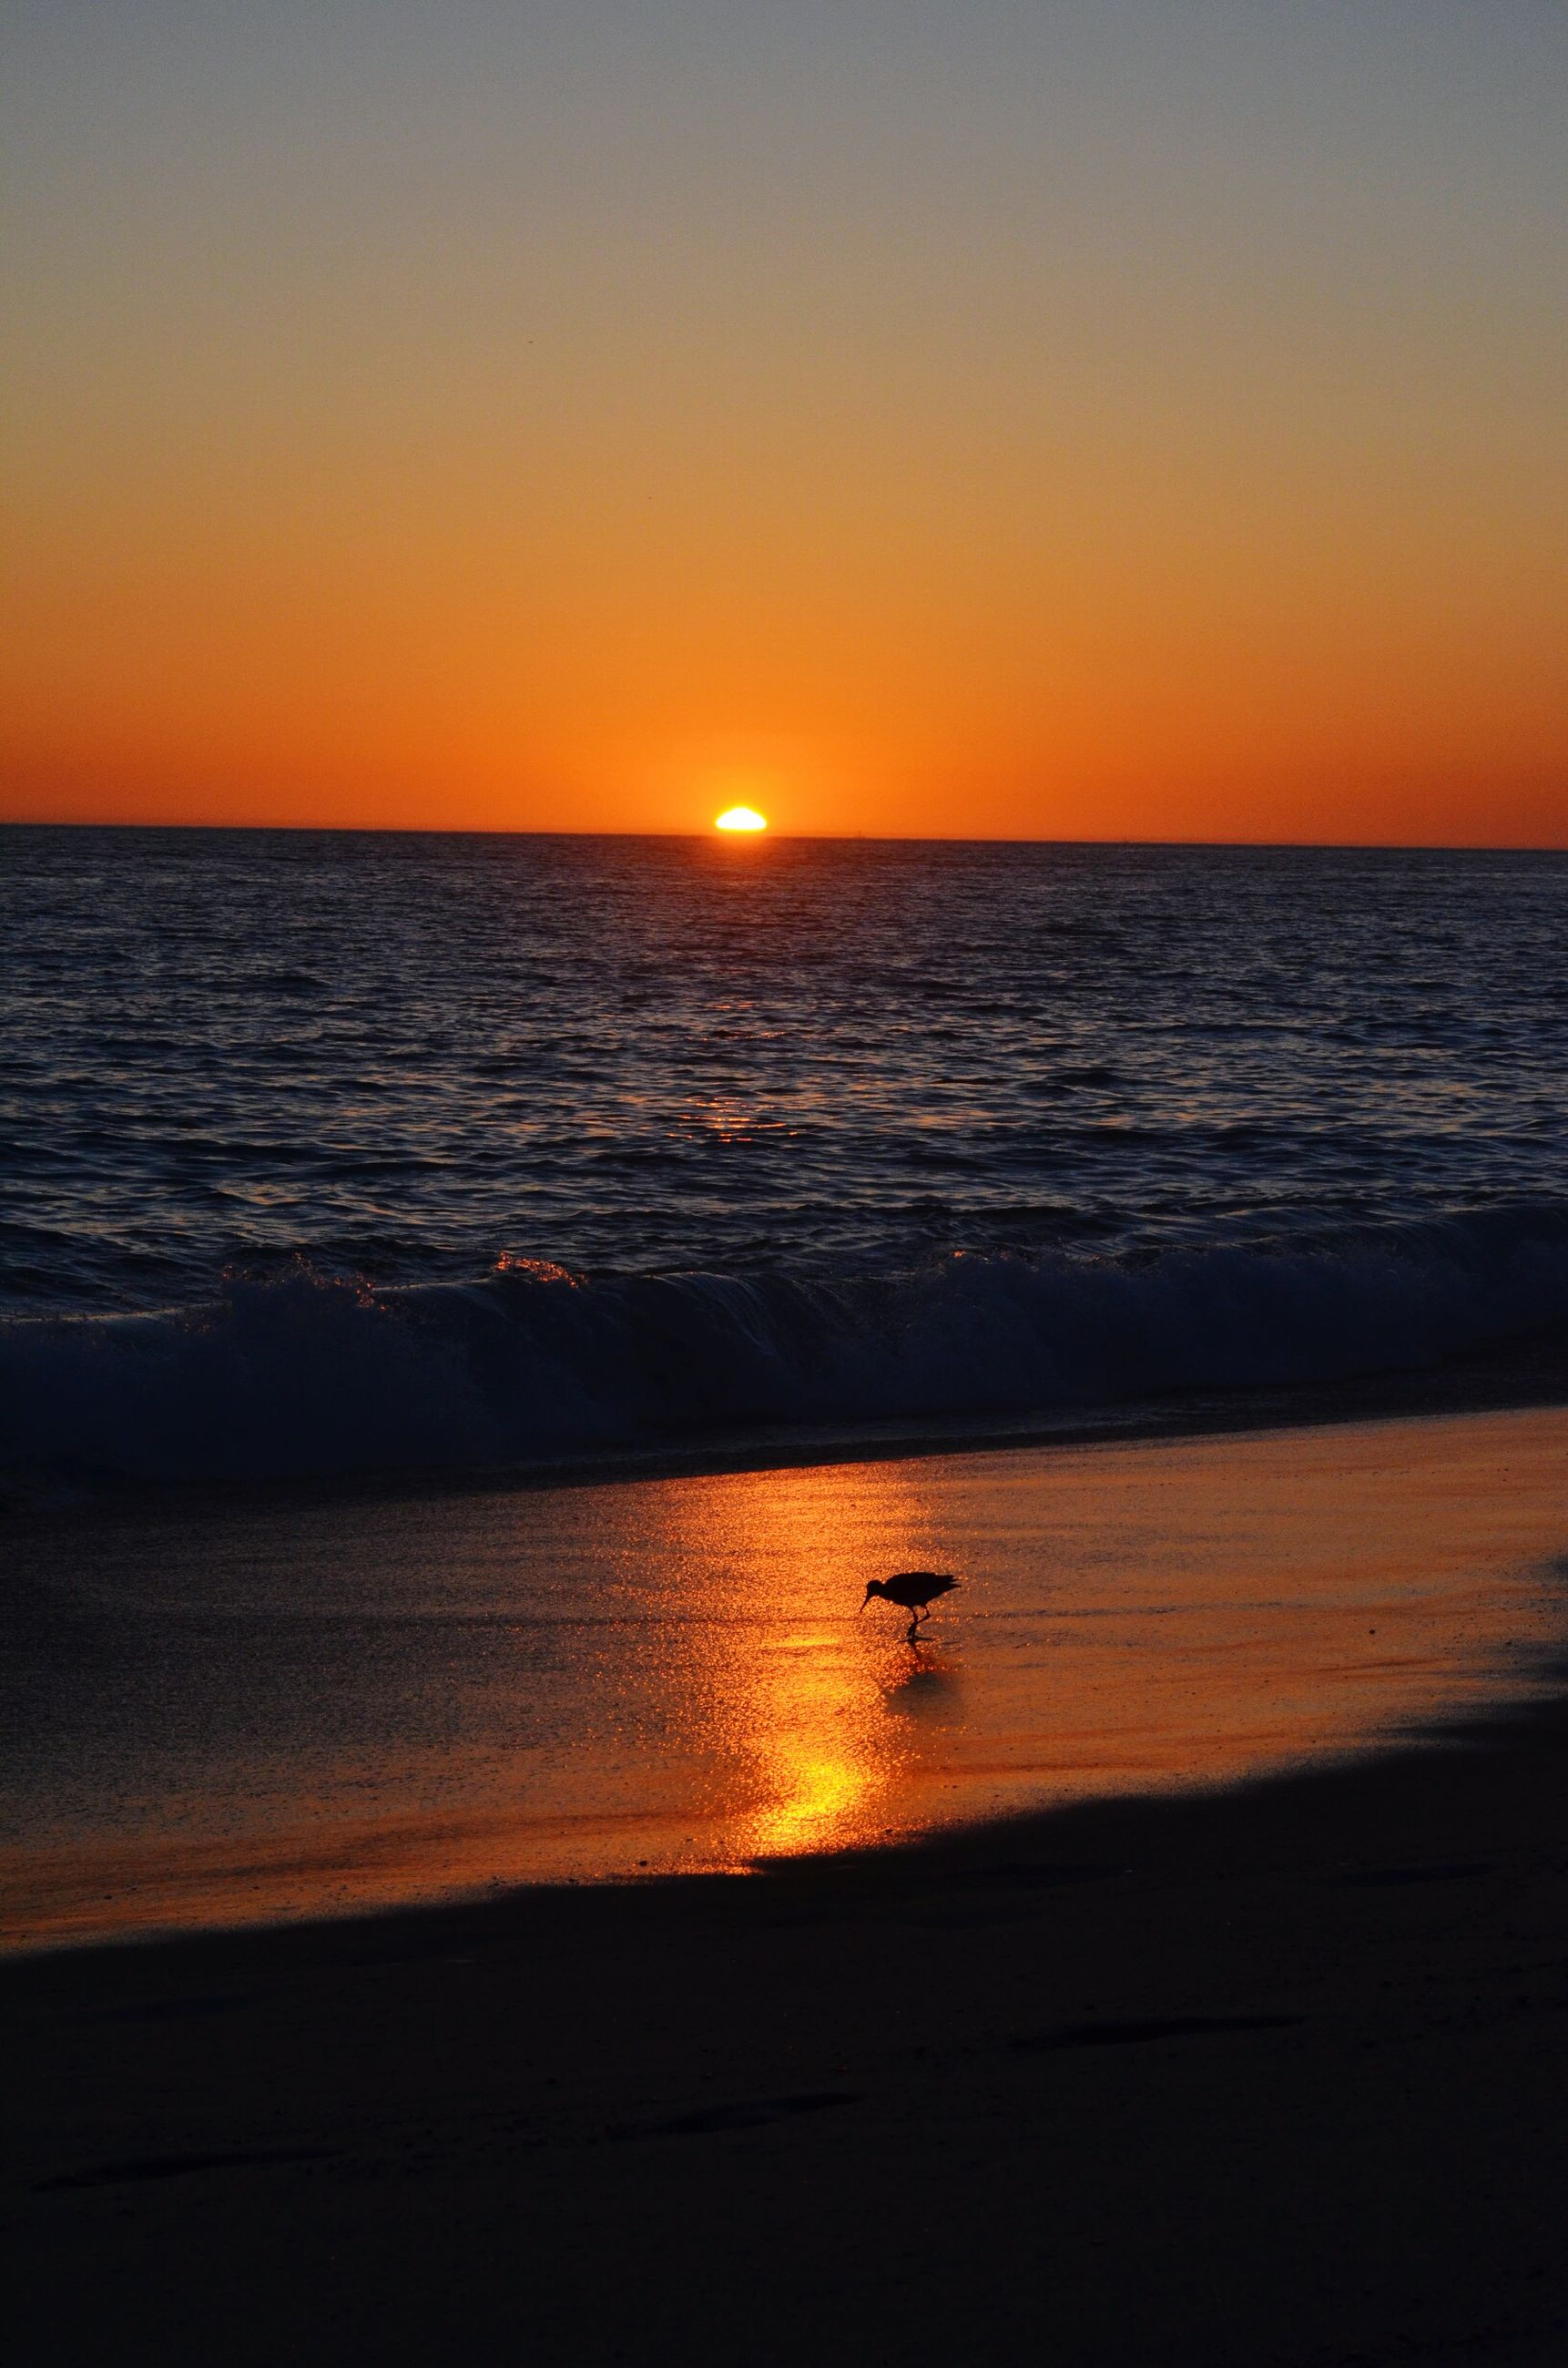 sunset, sea, horizon over water, water, orange color, sun, scenics, tranquil scene, beach, beauty in nature, tranquility, silhouette, clear sky, reflection, idyllic, shore, nature, copy space, sky, sunlight